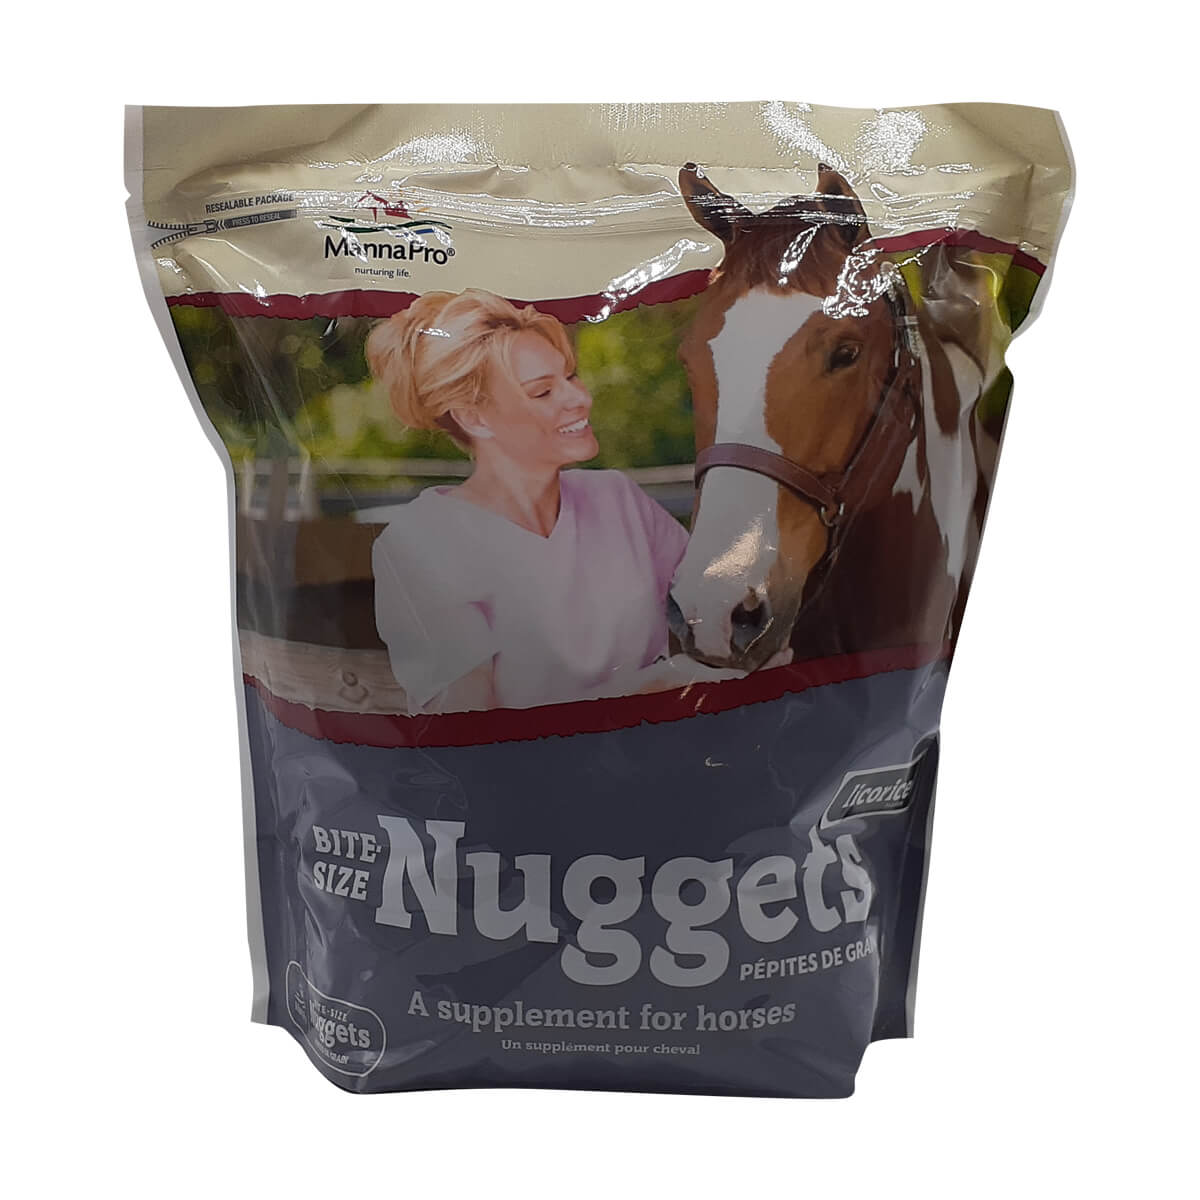 Bite-Sized Apple Nuggets for Horses - Licorice 5lb